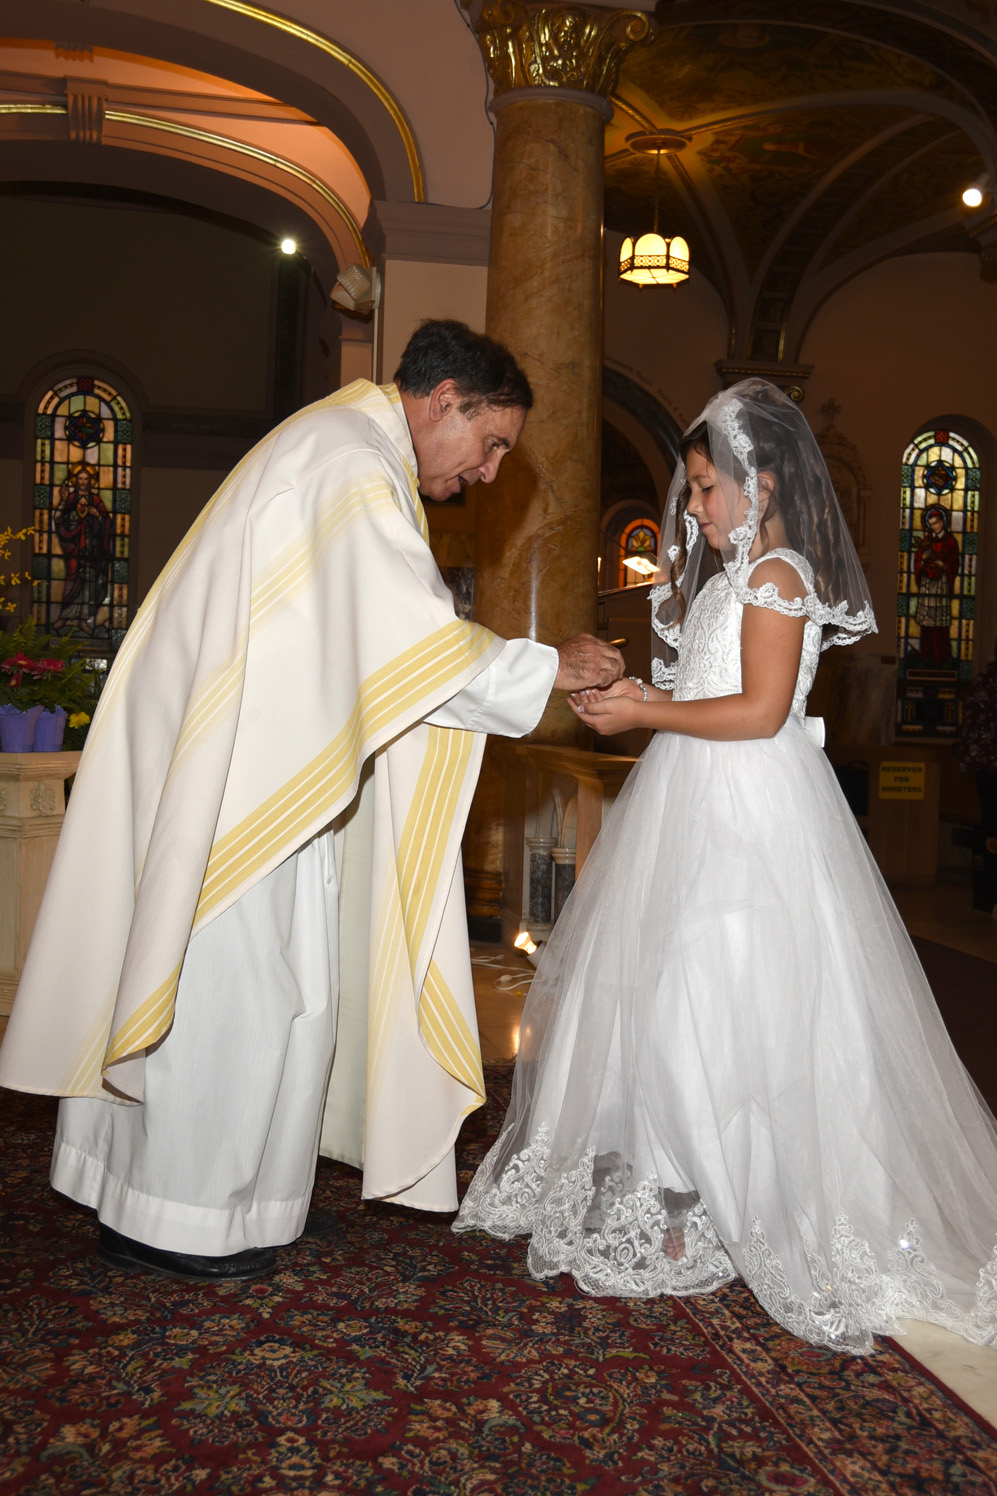 FIRST-COMMUNION-MAY-2-2021-1001001251